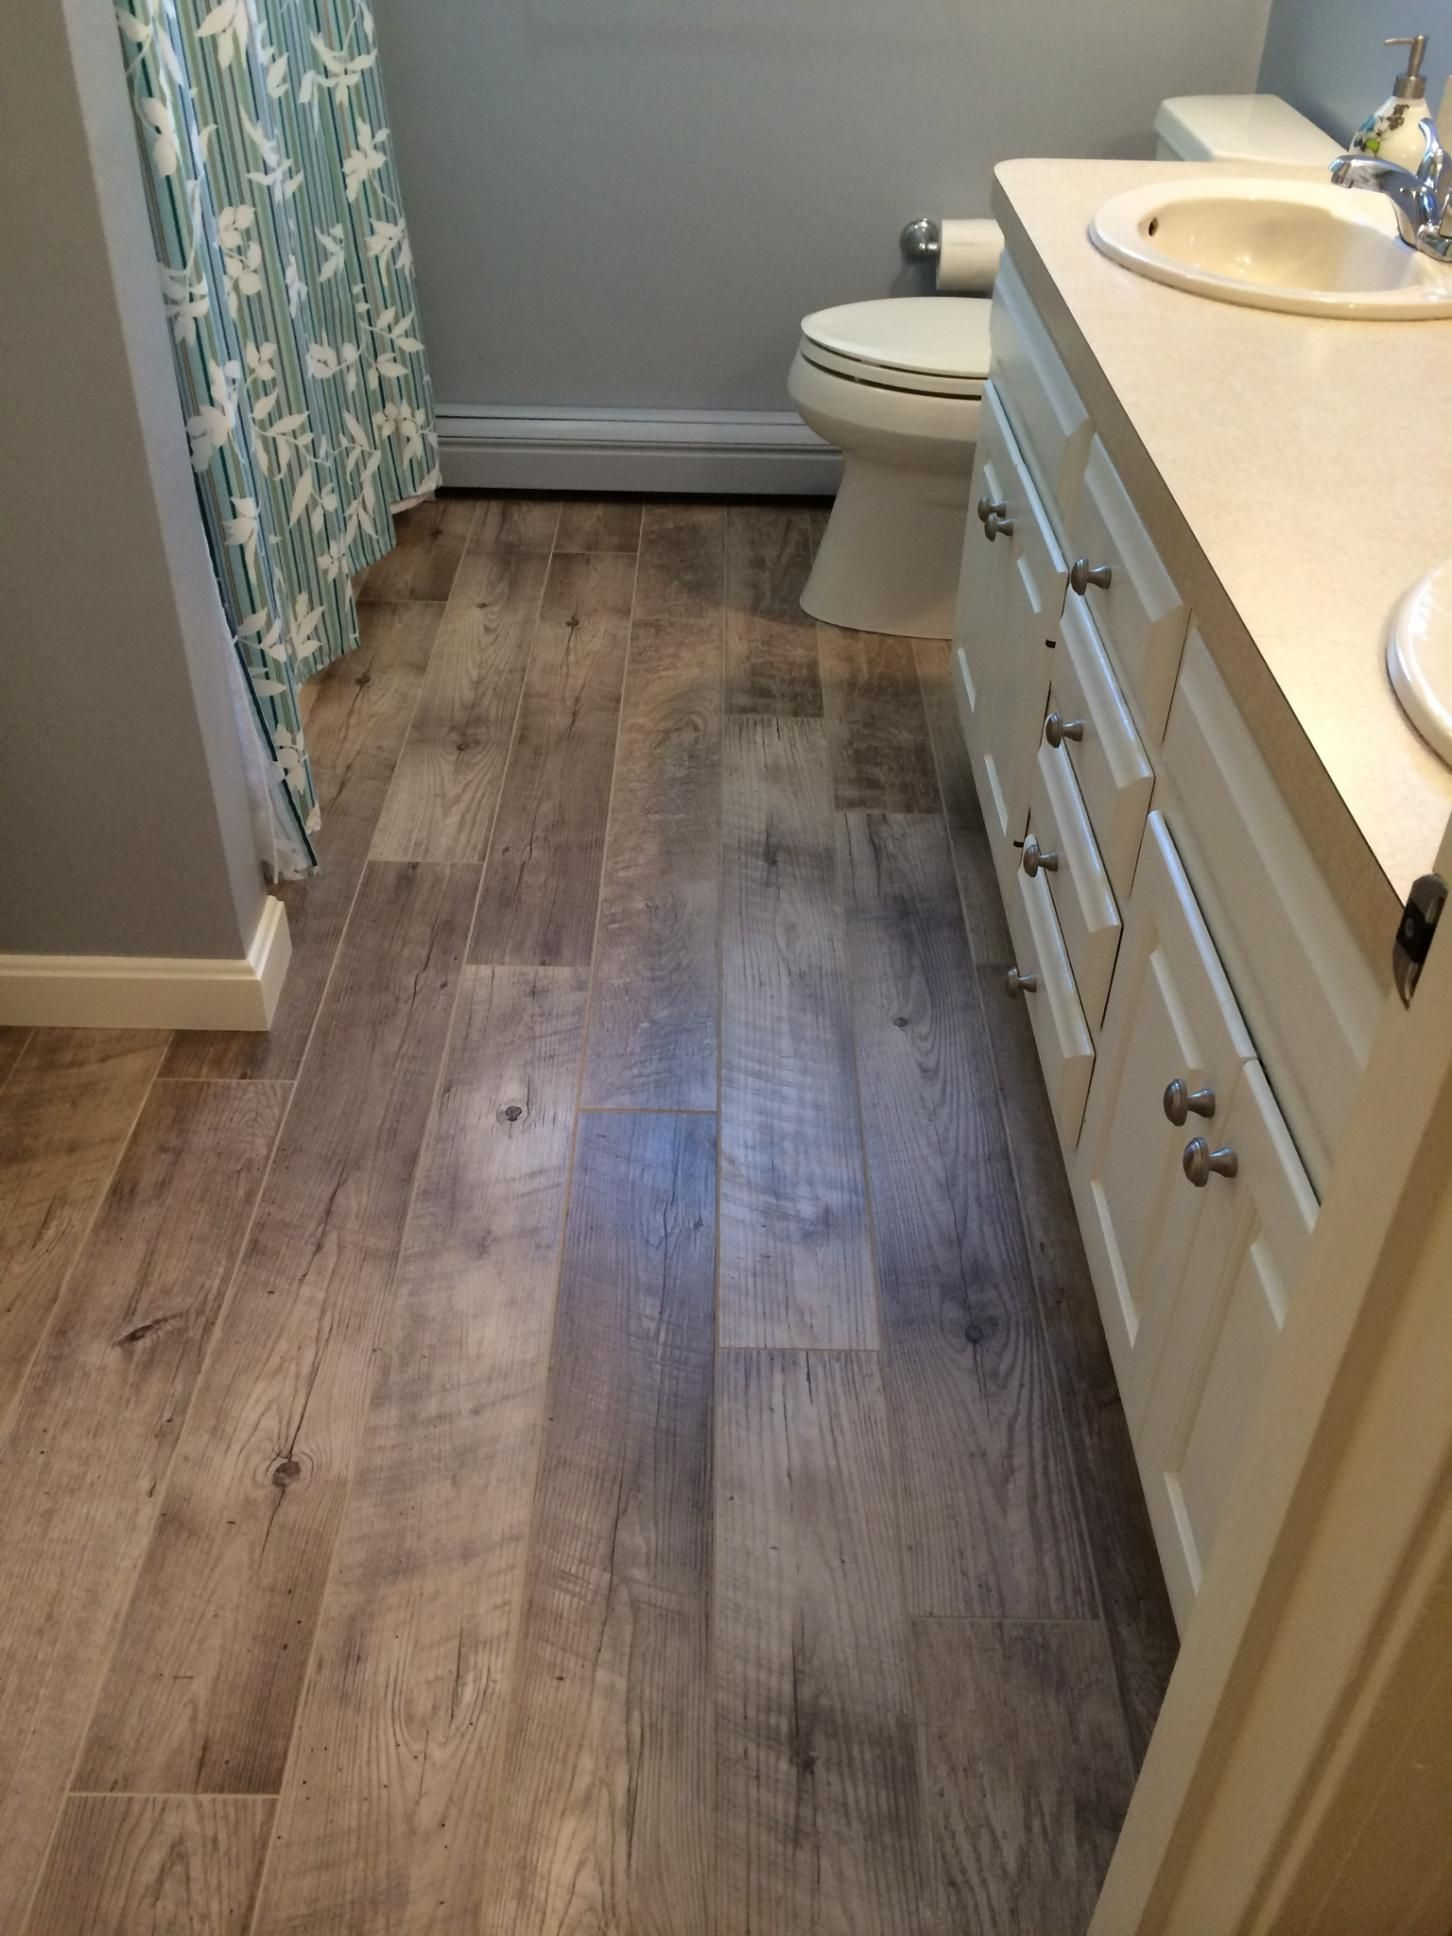 Installed With Chamois Grout Adura Distinctive Plank Dockside Sand Color Luxury Vinyl Flooring Sure Makes A Splash In This Bath